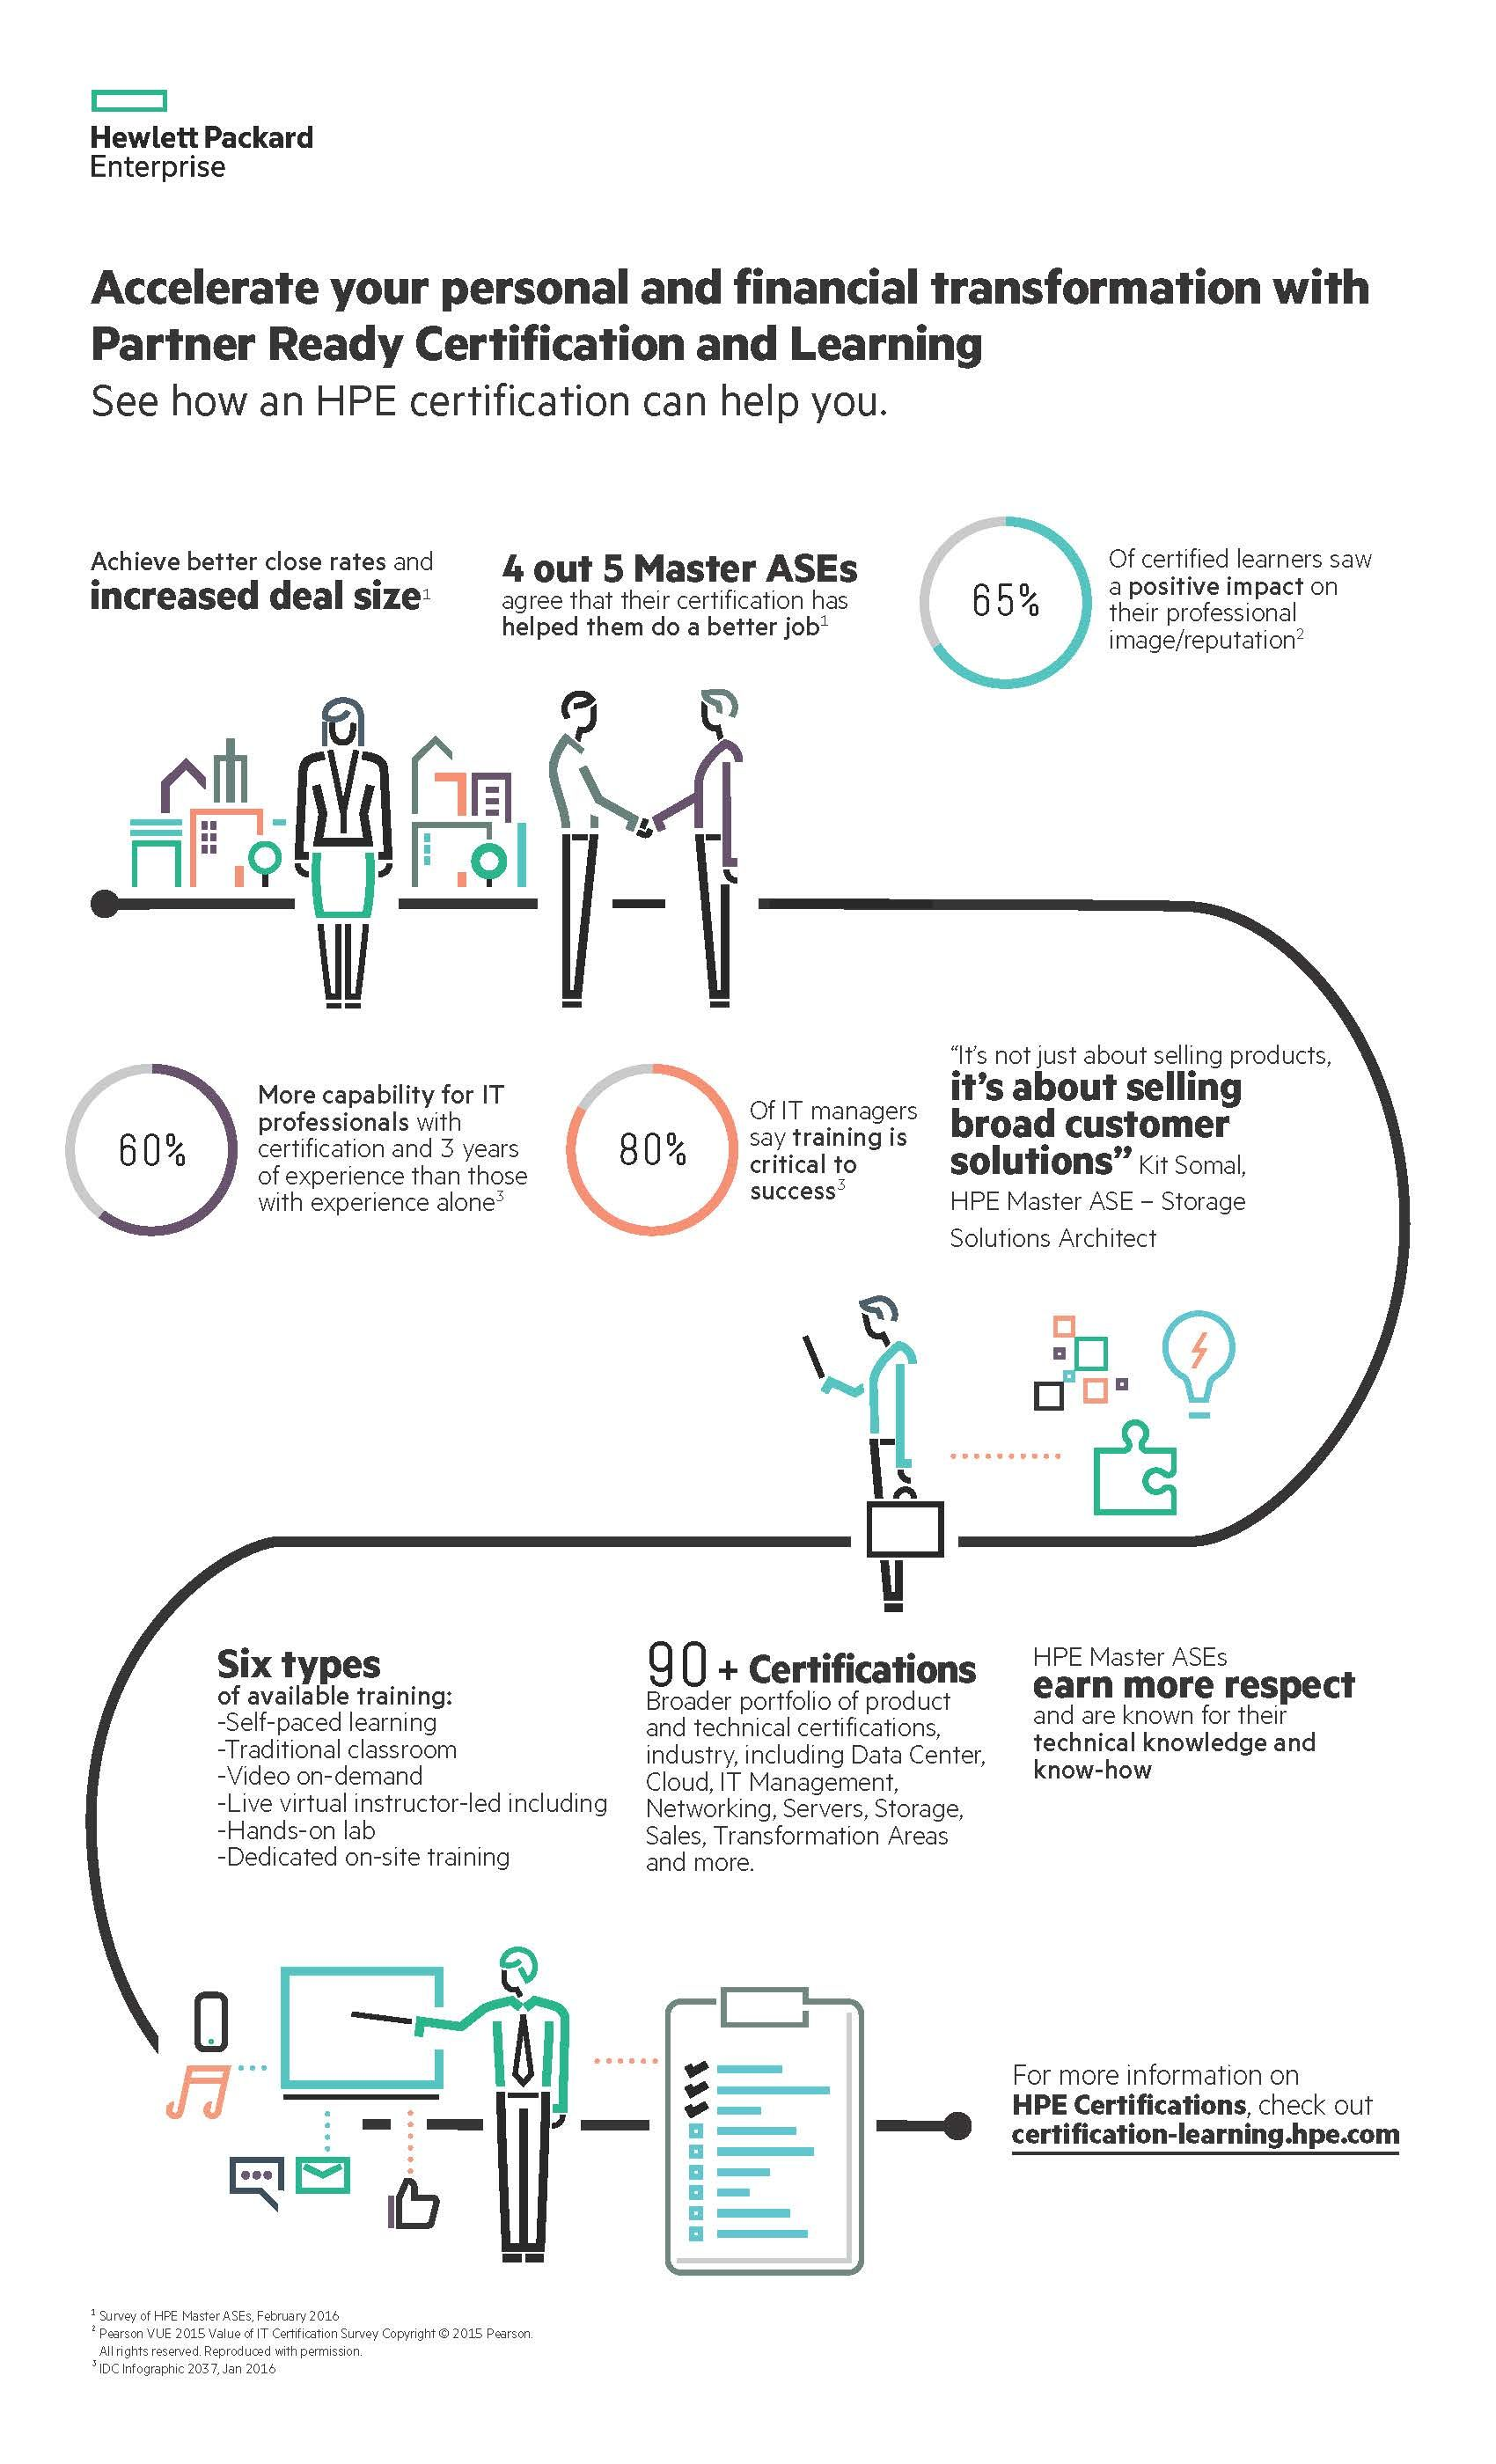 HPE Cert & Learning Infographic Aug 2016 .jpg